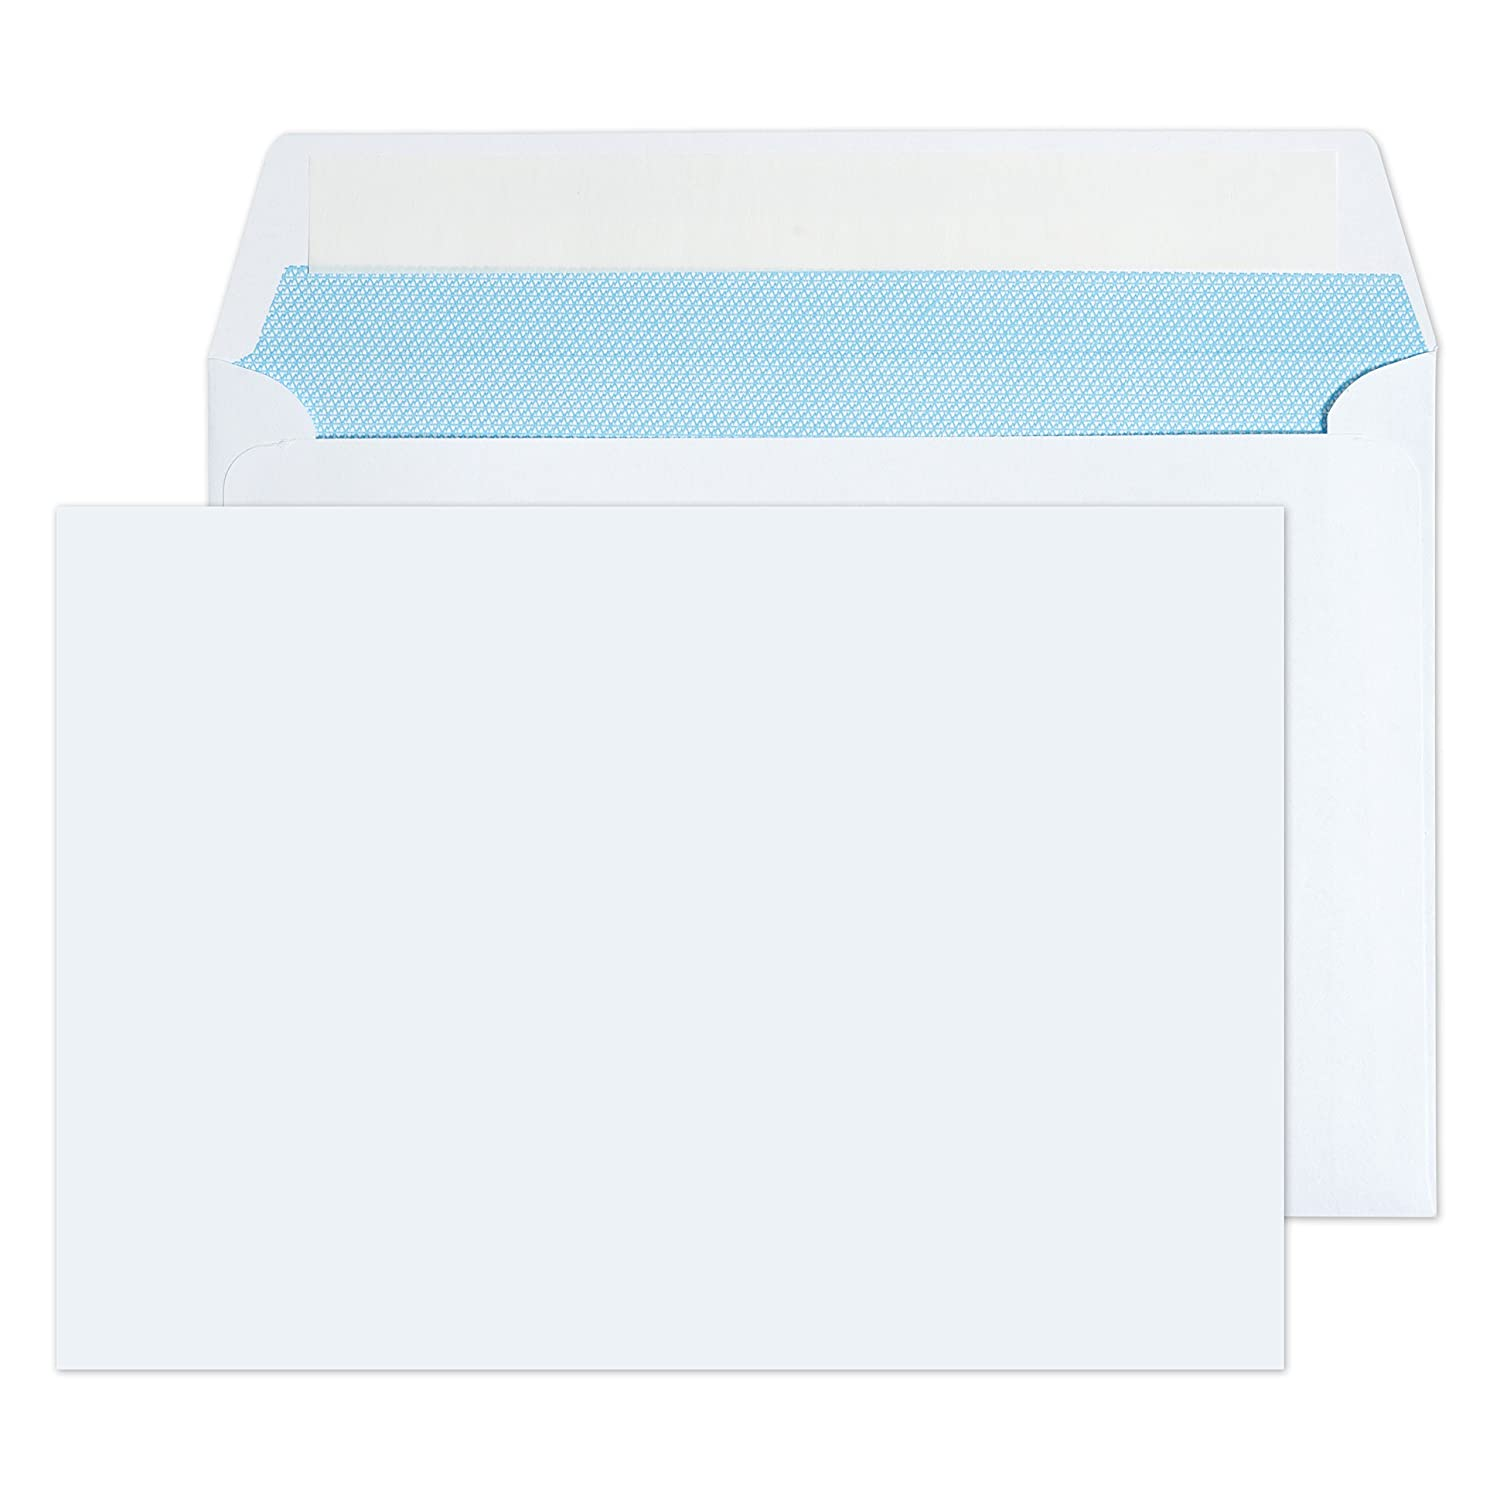 C5 / A5 White Peel & Seal Envelopes Pack of 30 - High Quality Free UK Delivery